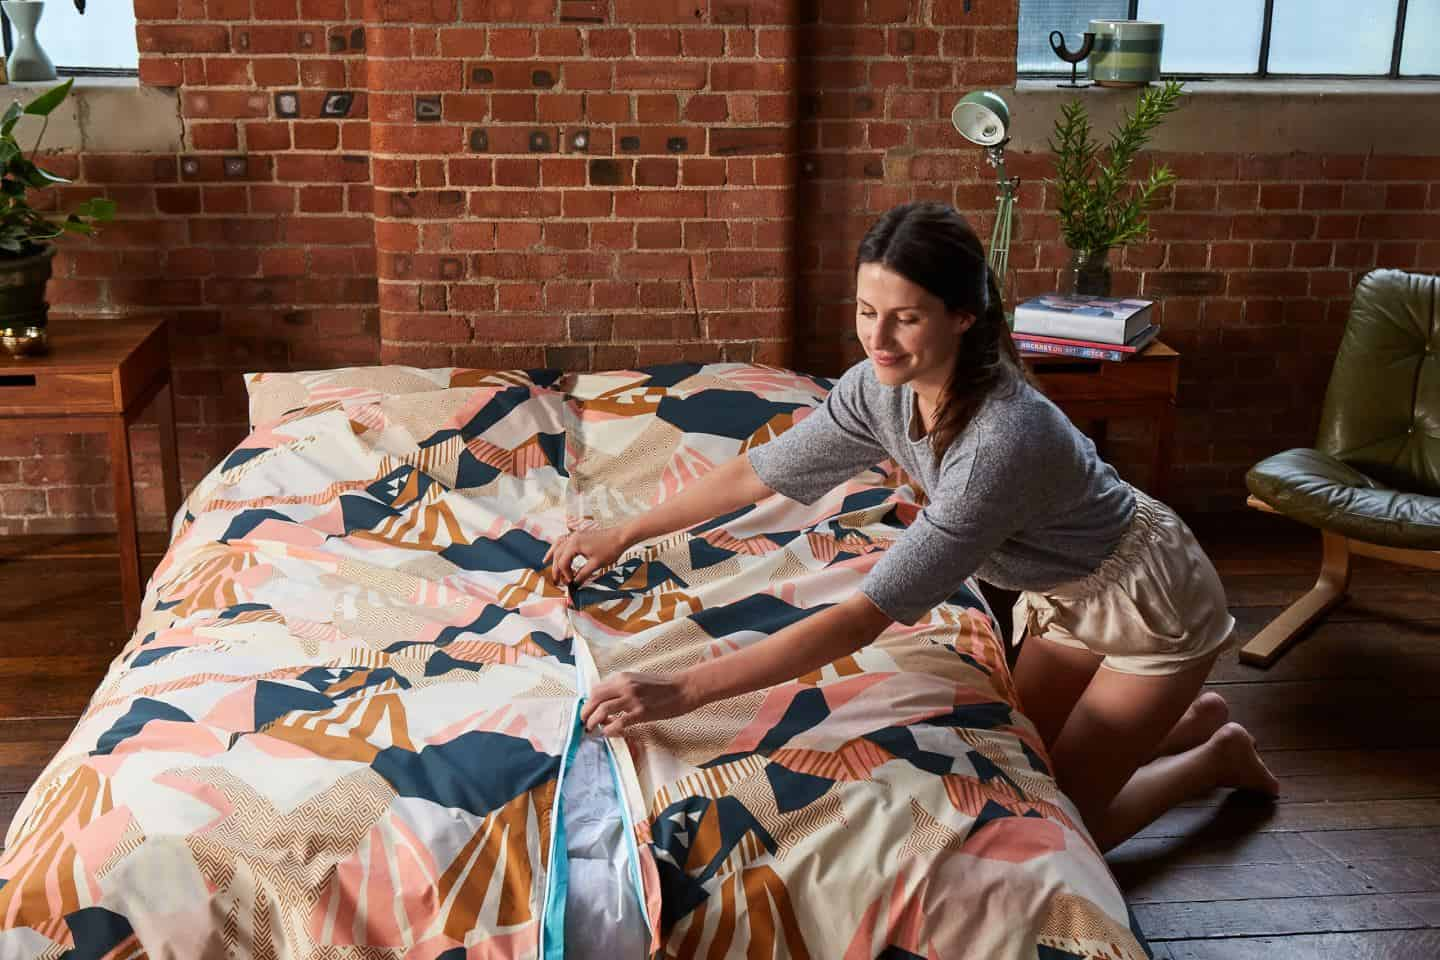 Koa revolutionary duvet cover. A woman closes the central zip once the duvet has been positioned inside. The easy way to change a duvet cover